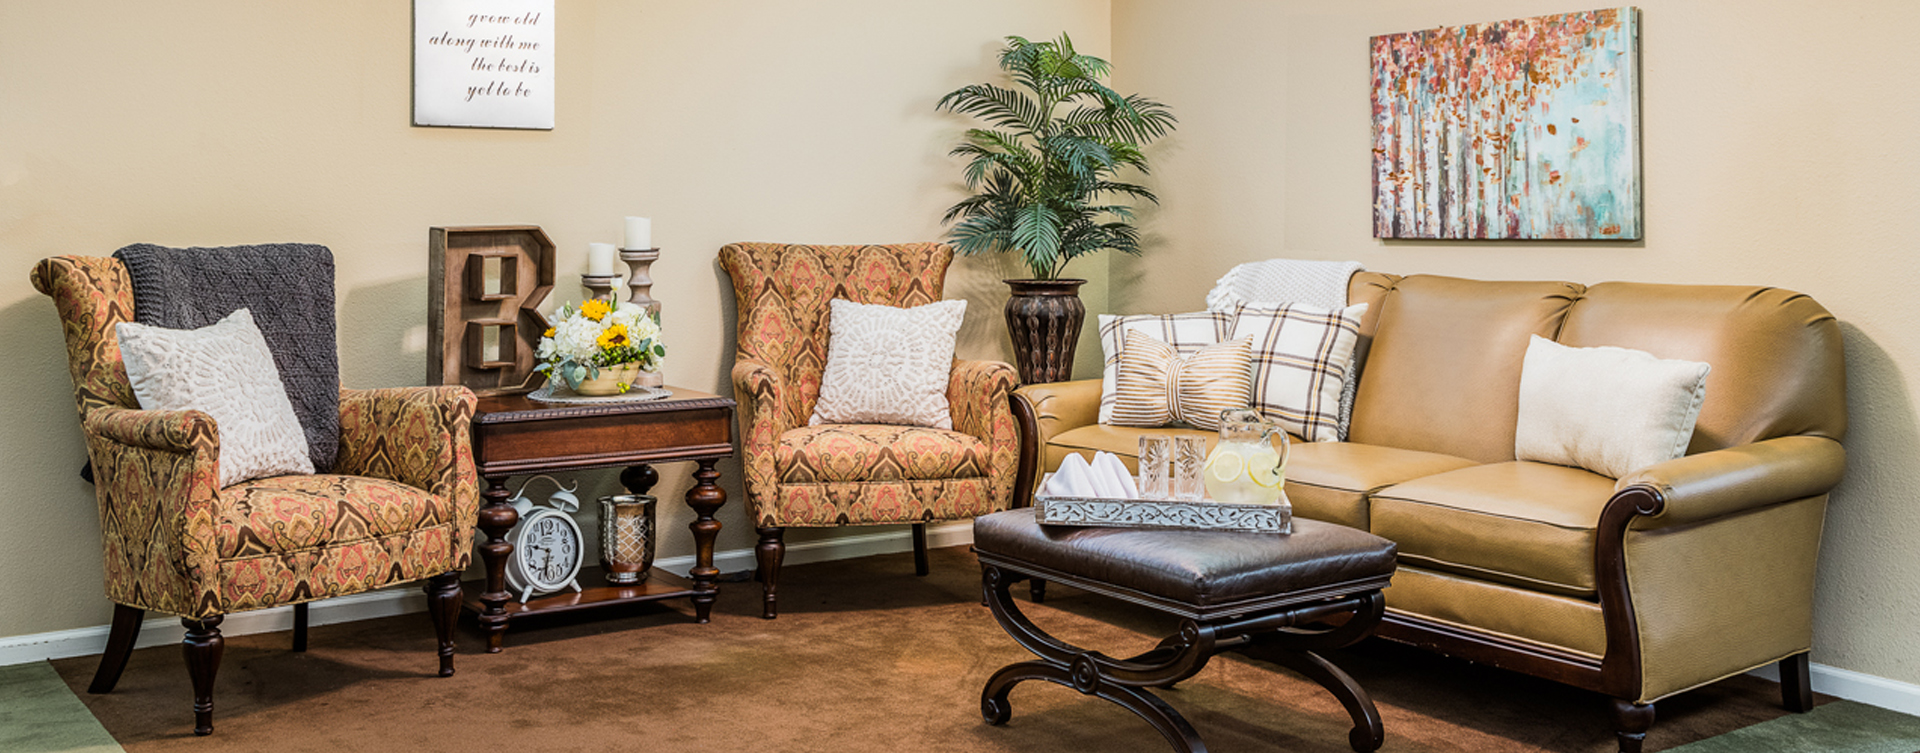 Enjoy a good snooze in the sitting area at Bickford of Fort Dodge